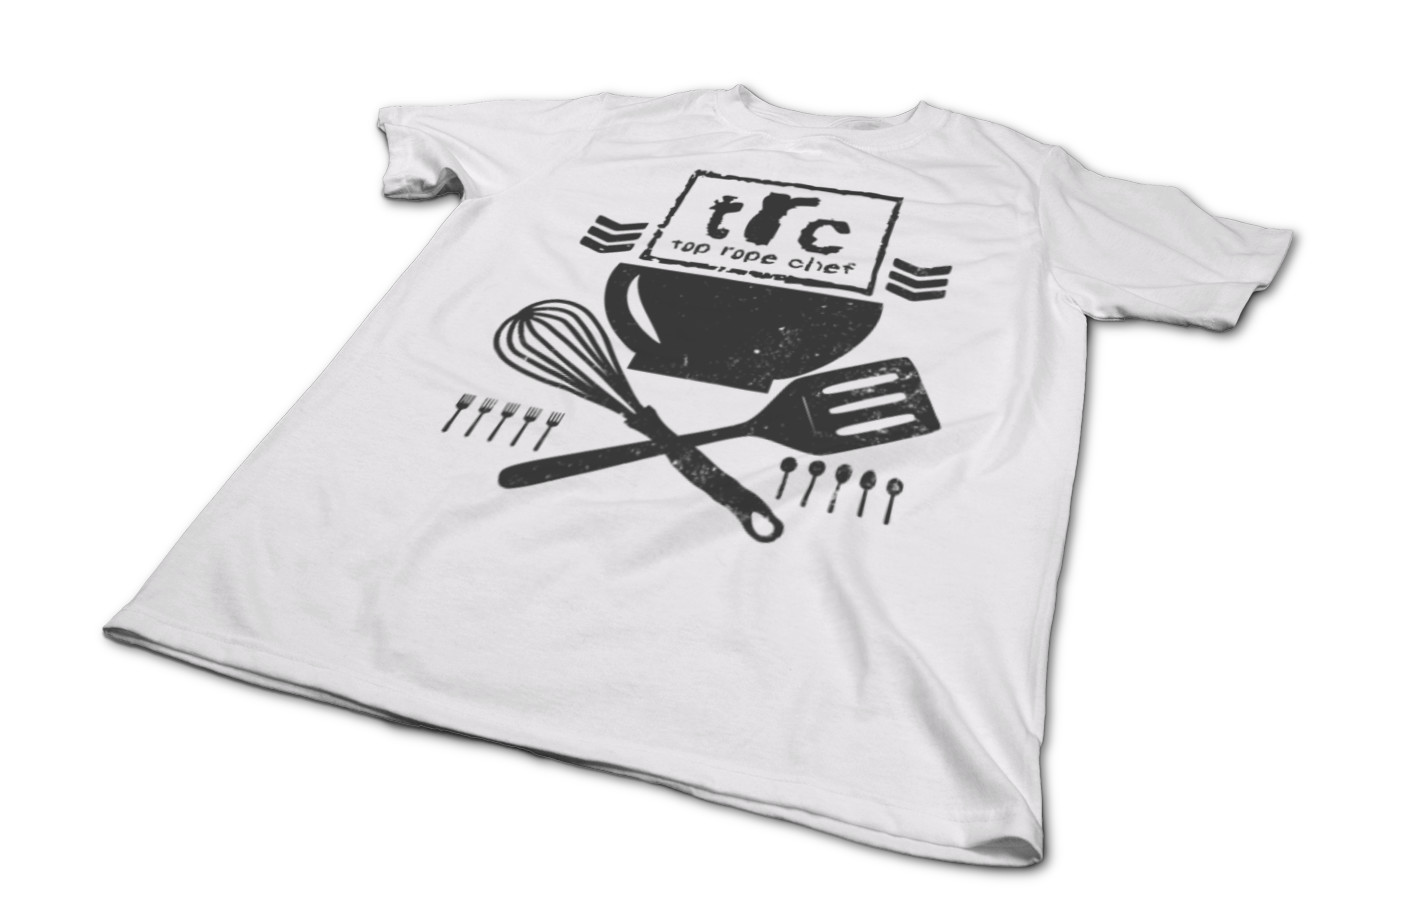 What we remember top rope chef club white 1530210948